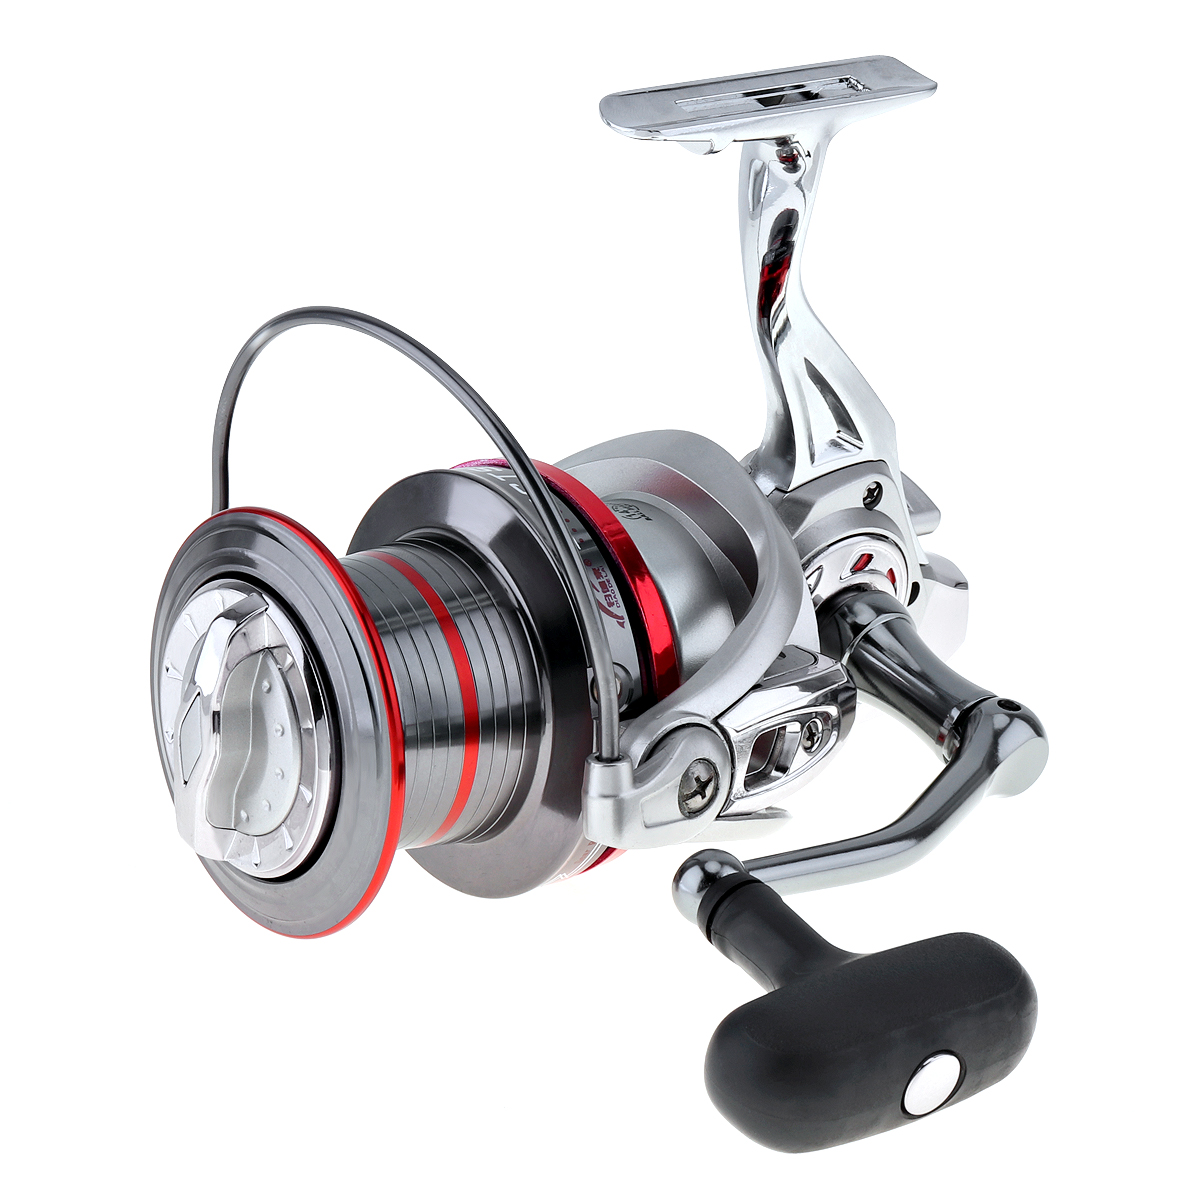 Durable Full Metal Spinning Fishing Reel 12000 Series 14+1 Ball Bearing Long Distance Surfcasting Wheel with Larger Spool ball bearing professional long distance casting spinning fishing reel surfcasting reel left right spinning reel